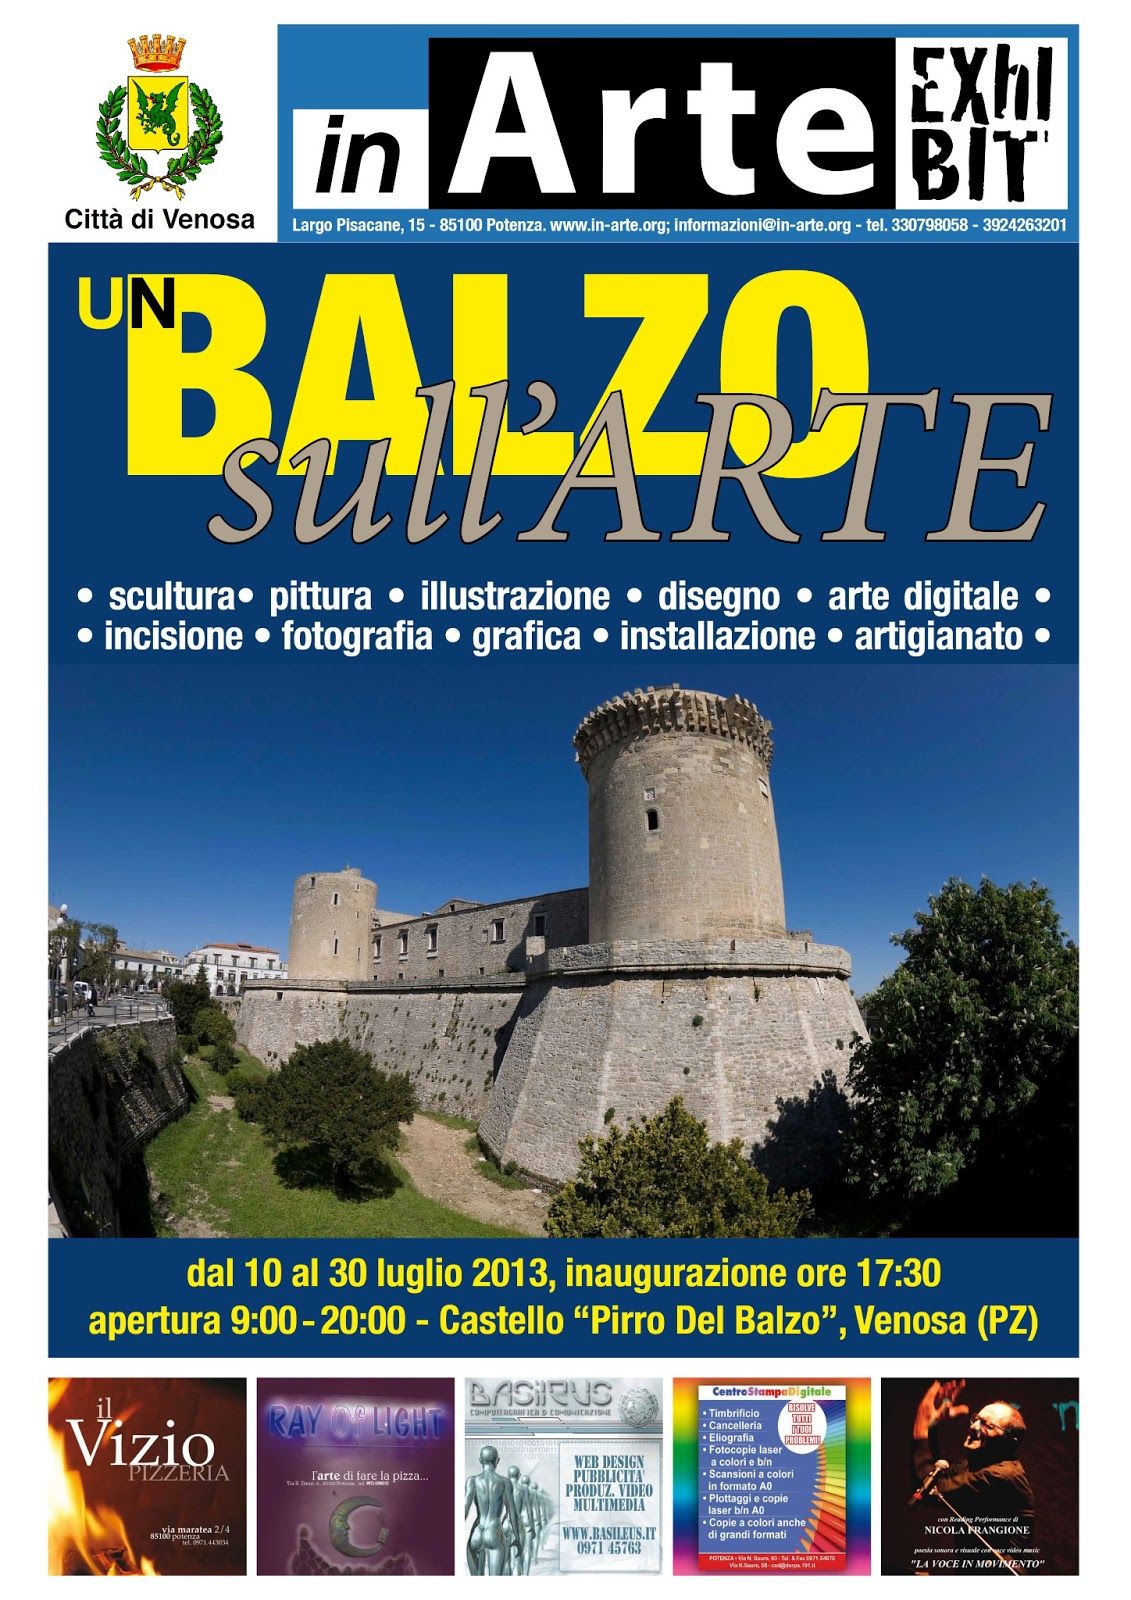 http://inarte-blog.blogspot.it/2013/07/un-balzo-sullarte.html